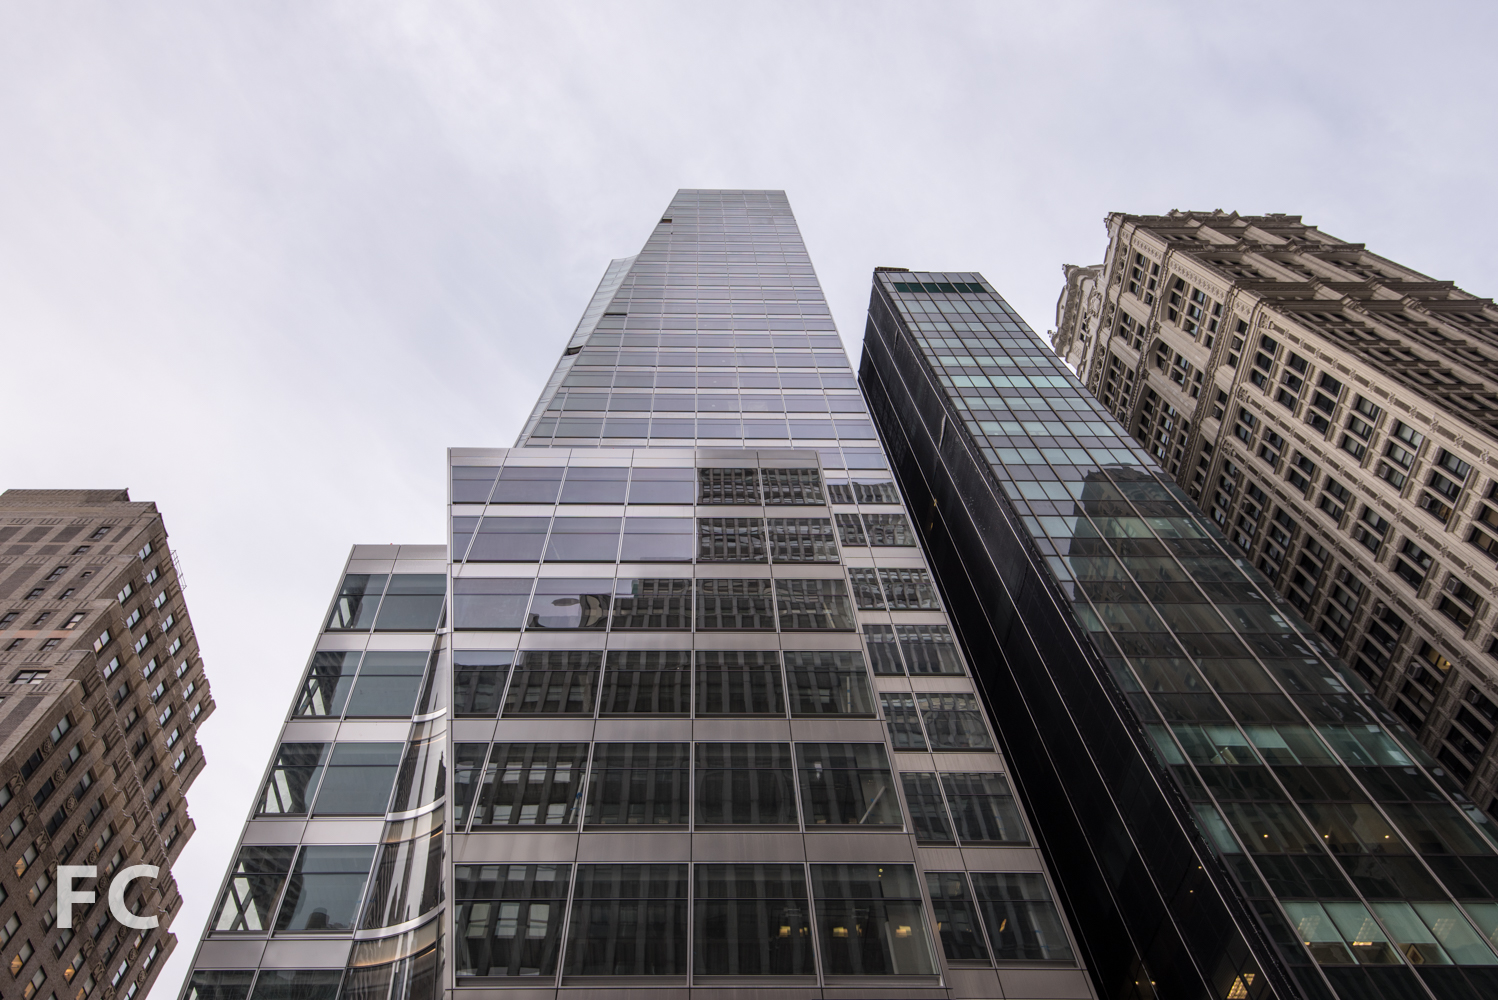 North façade from West 40th Street.